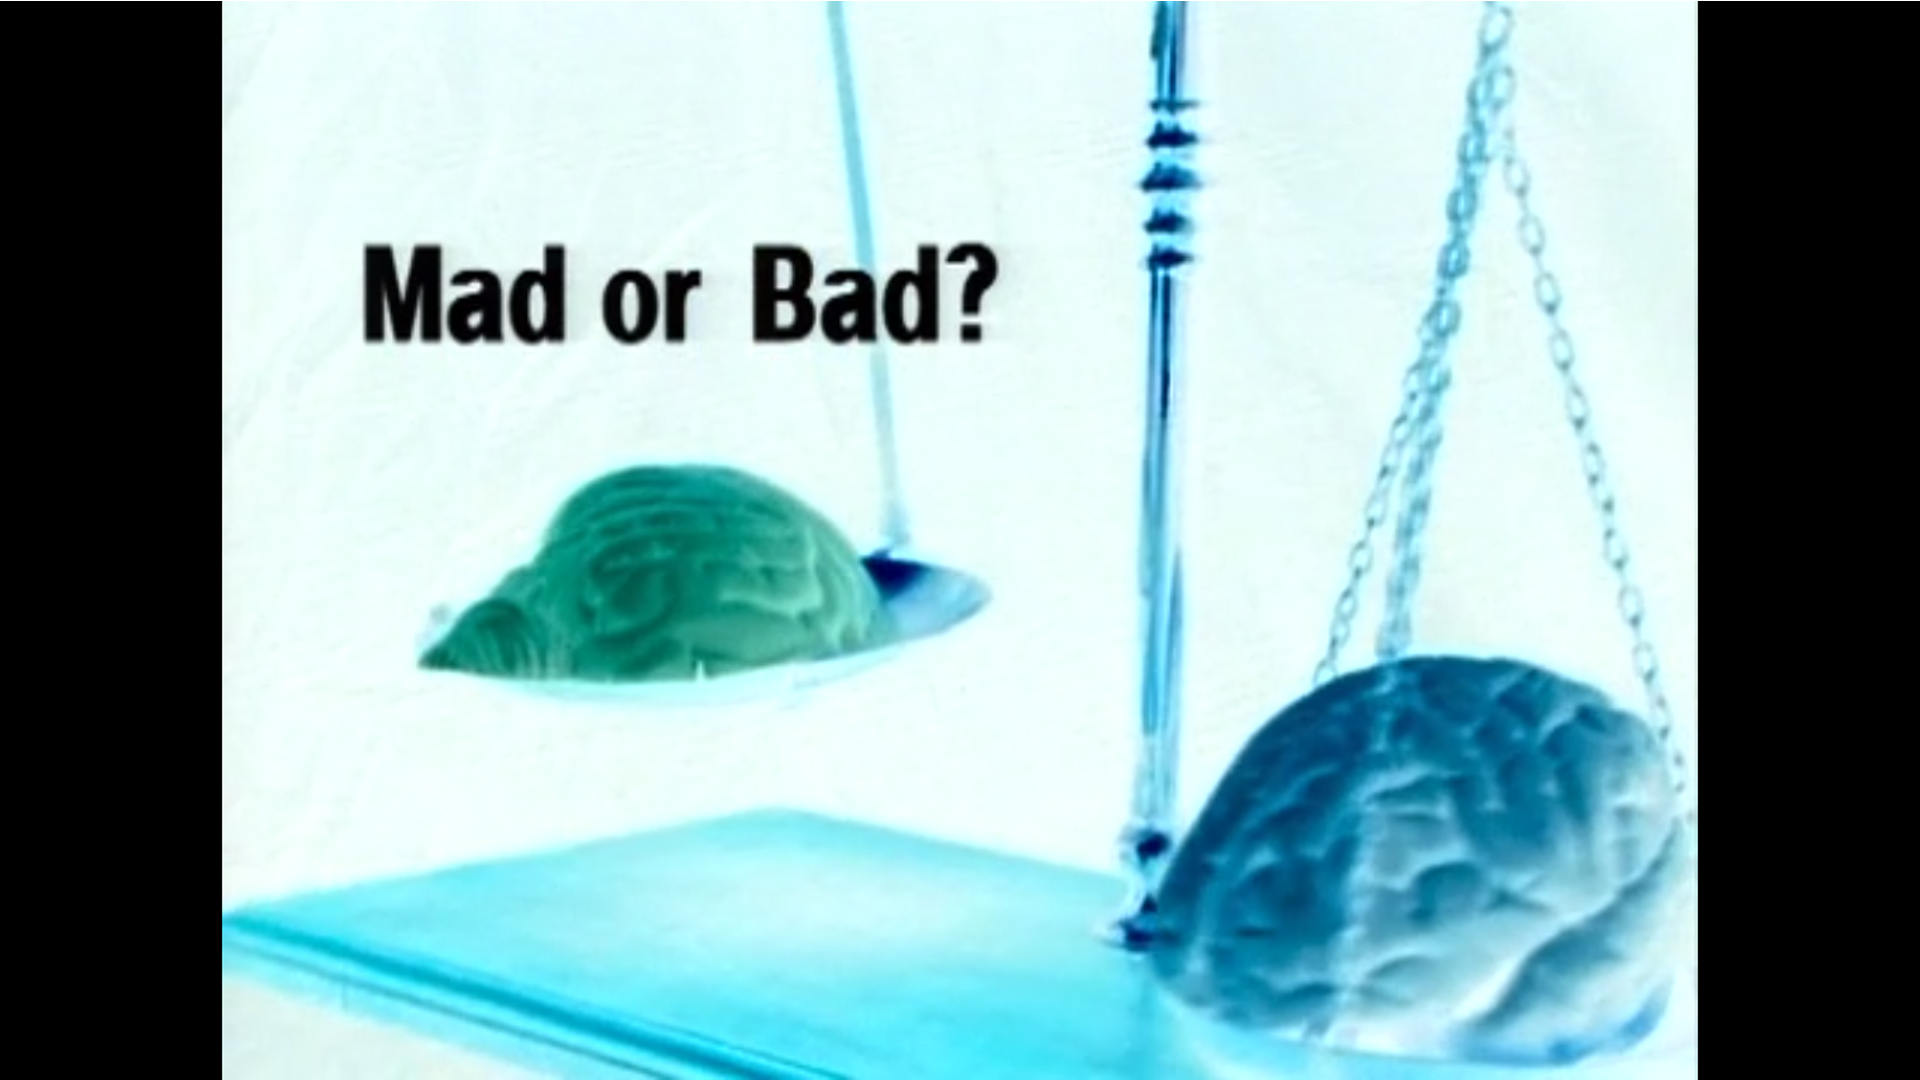 Watch Full Movie - Inside the Criminal Mind - Mad or Bad?